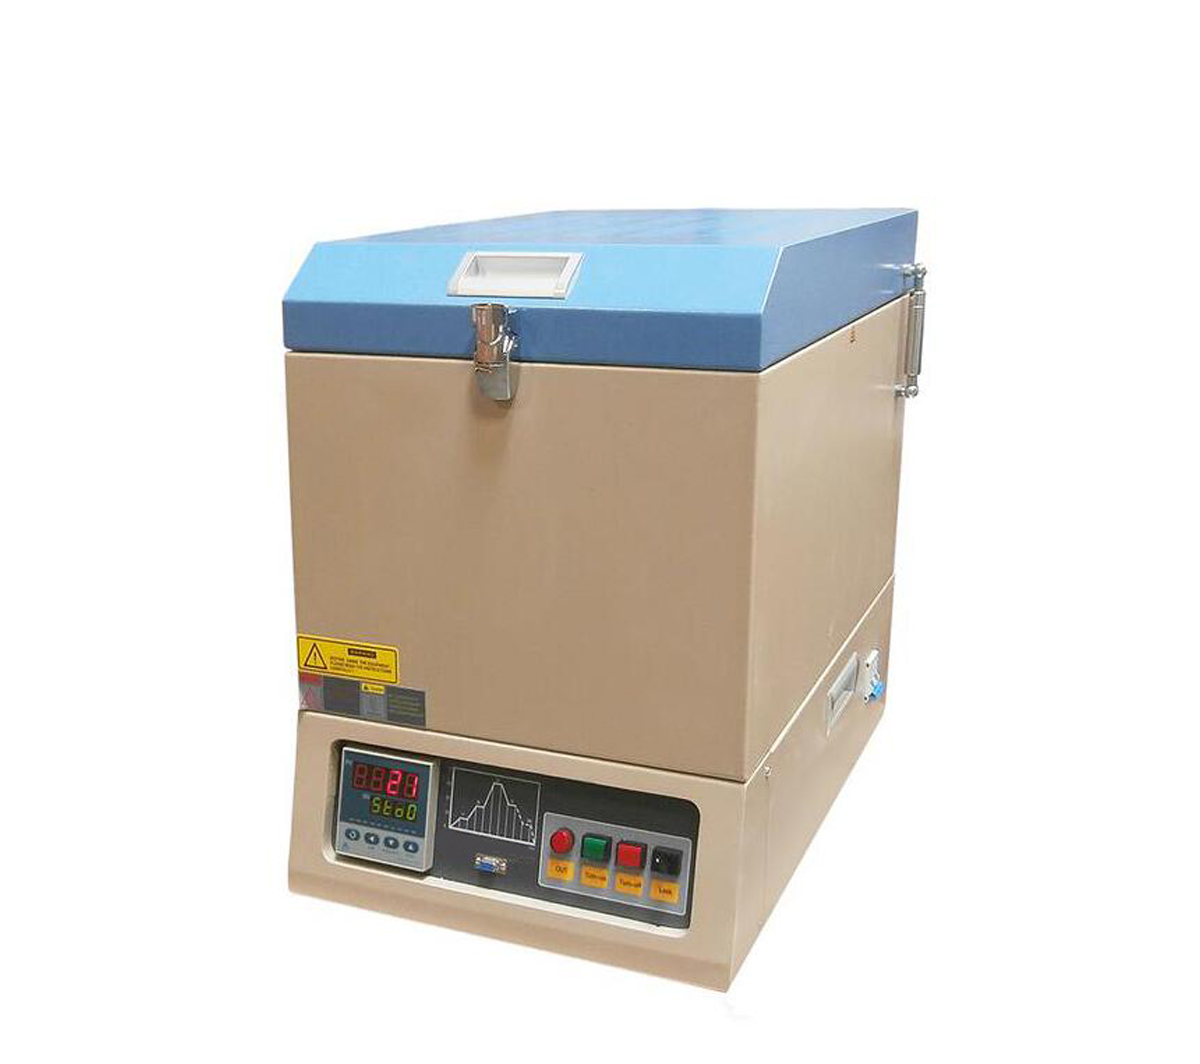 """Vertical Crucible Furnace with 9.5""""Dia x 8.6""""H Chamber with PID Programmable Controller CY-VBF-1200X"""